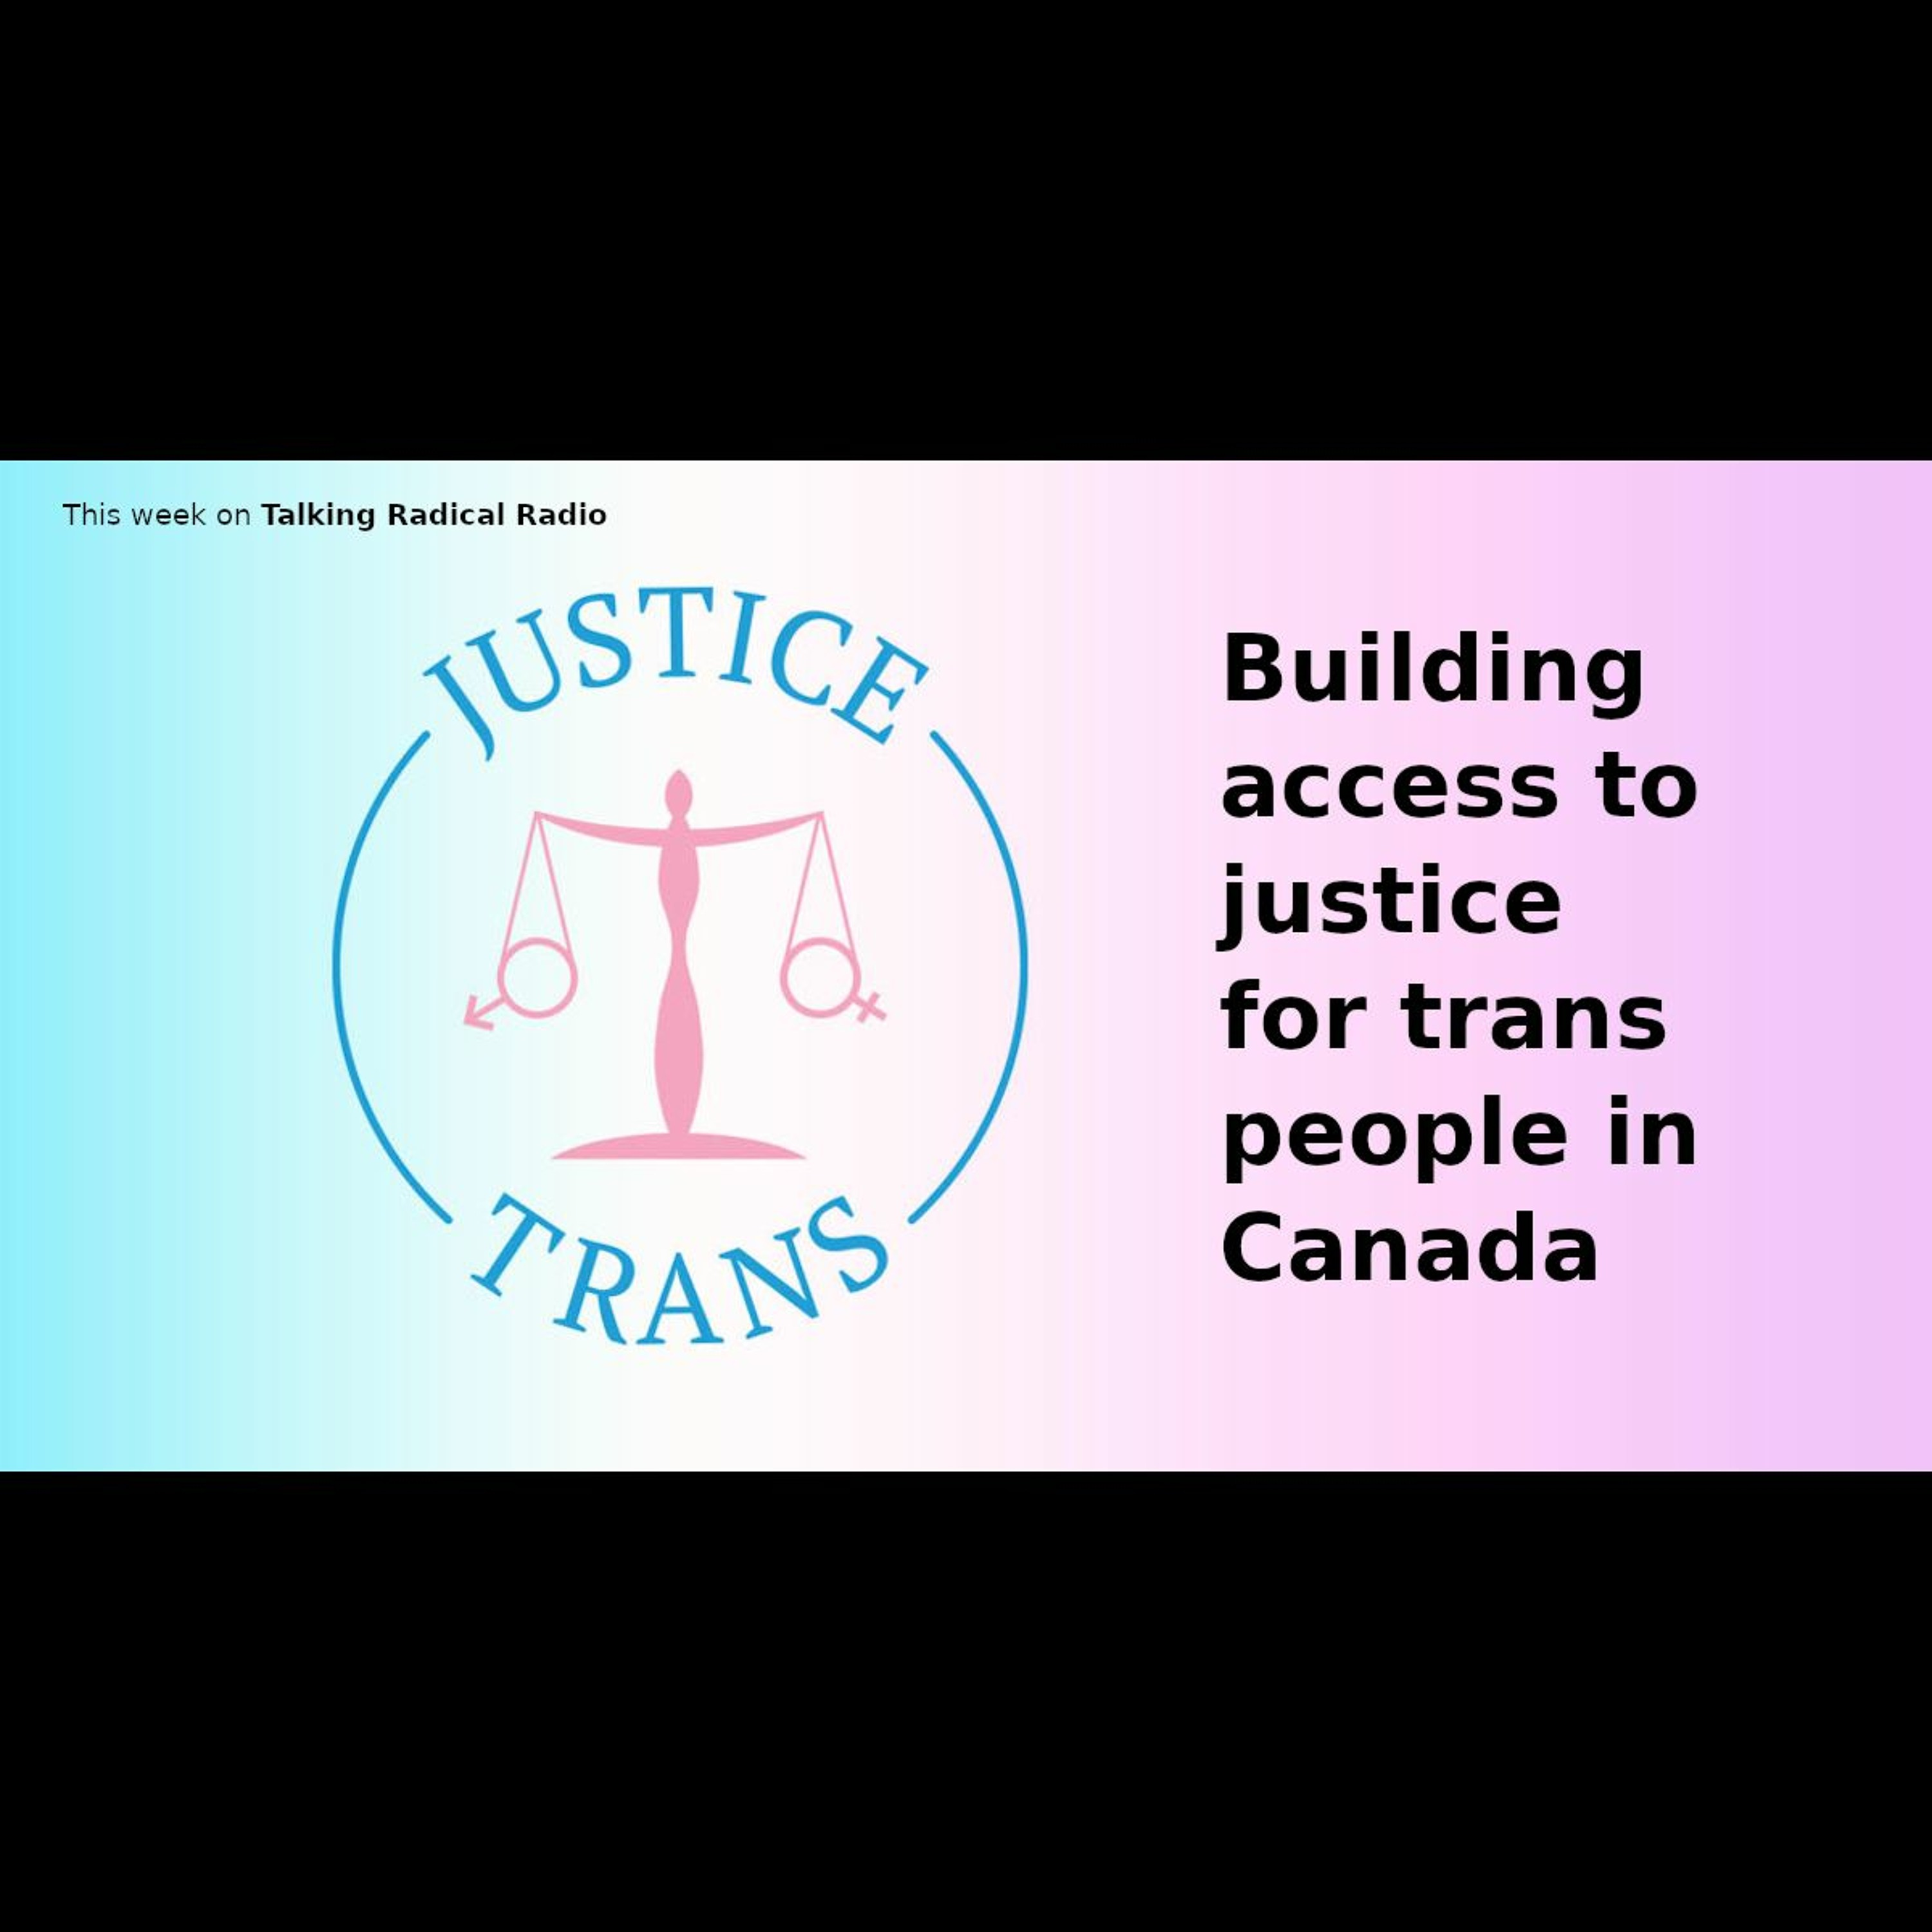 Building access to justice for trans people in Canada